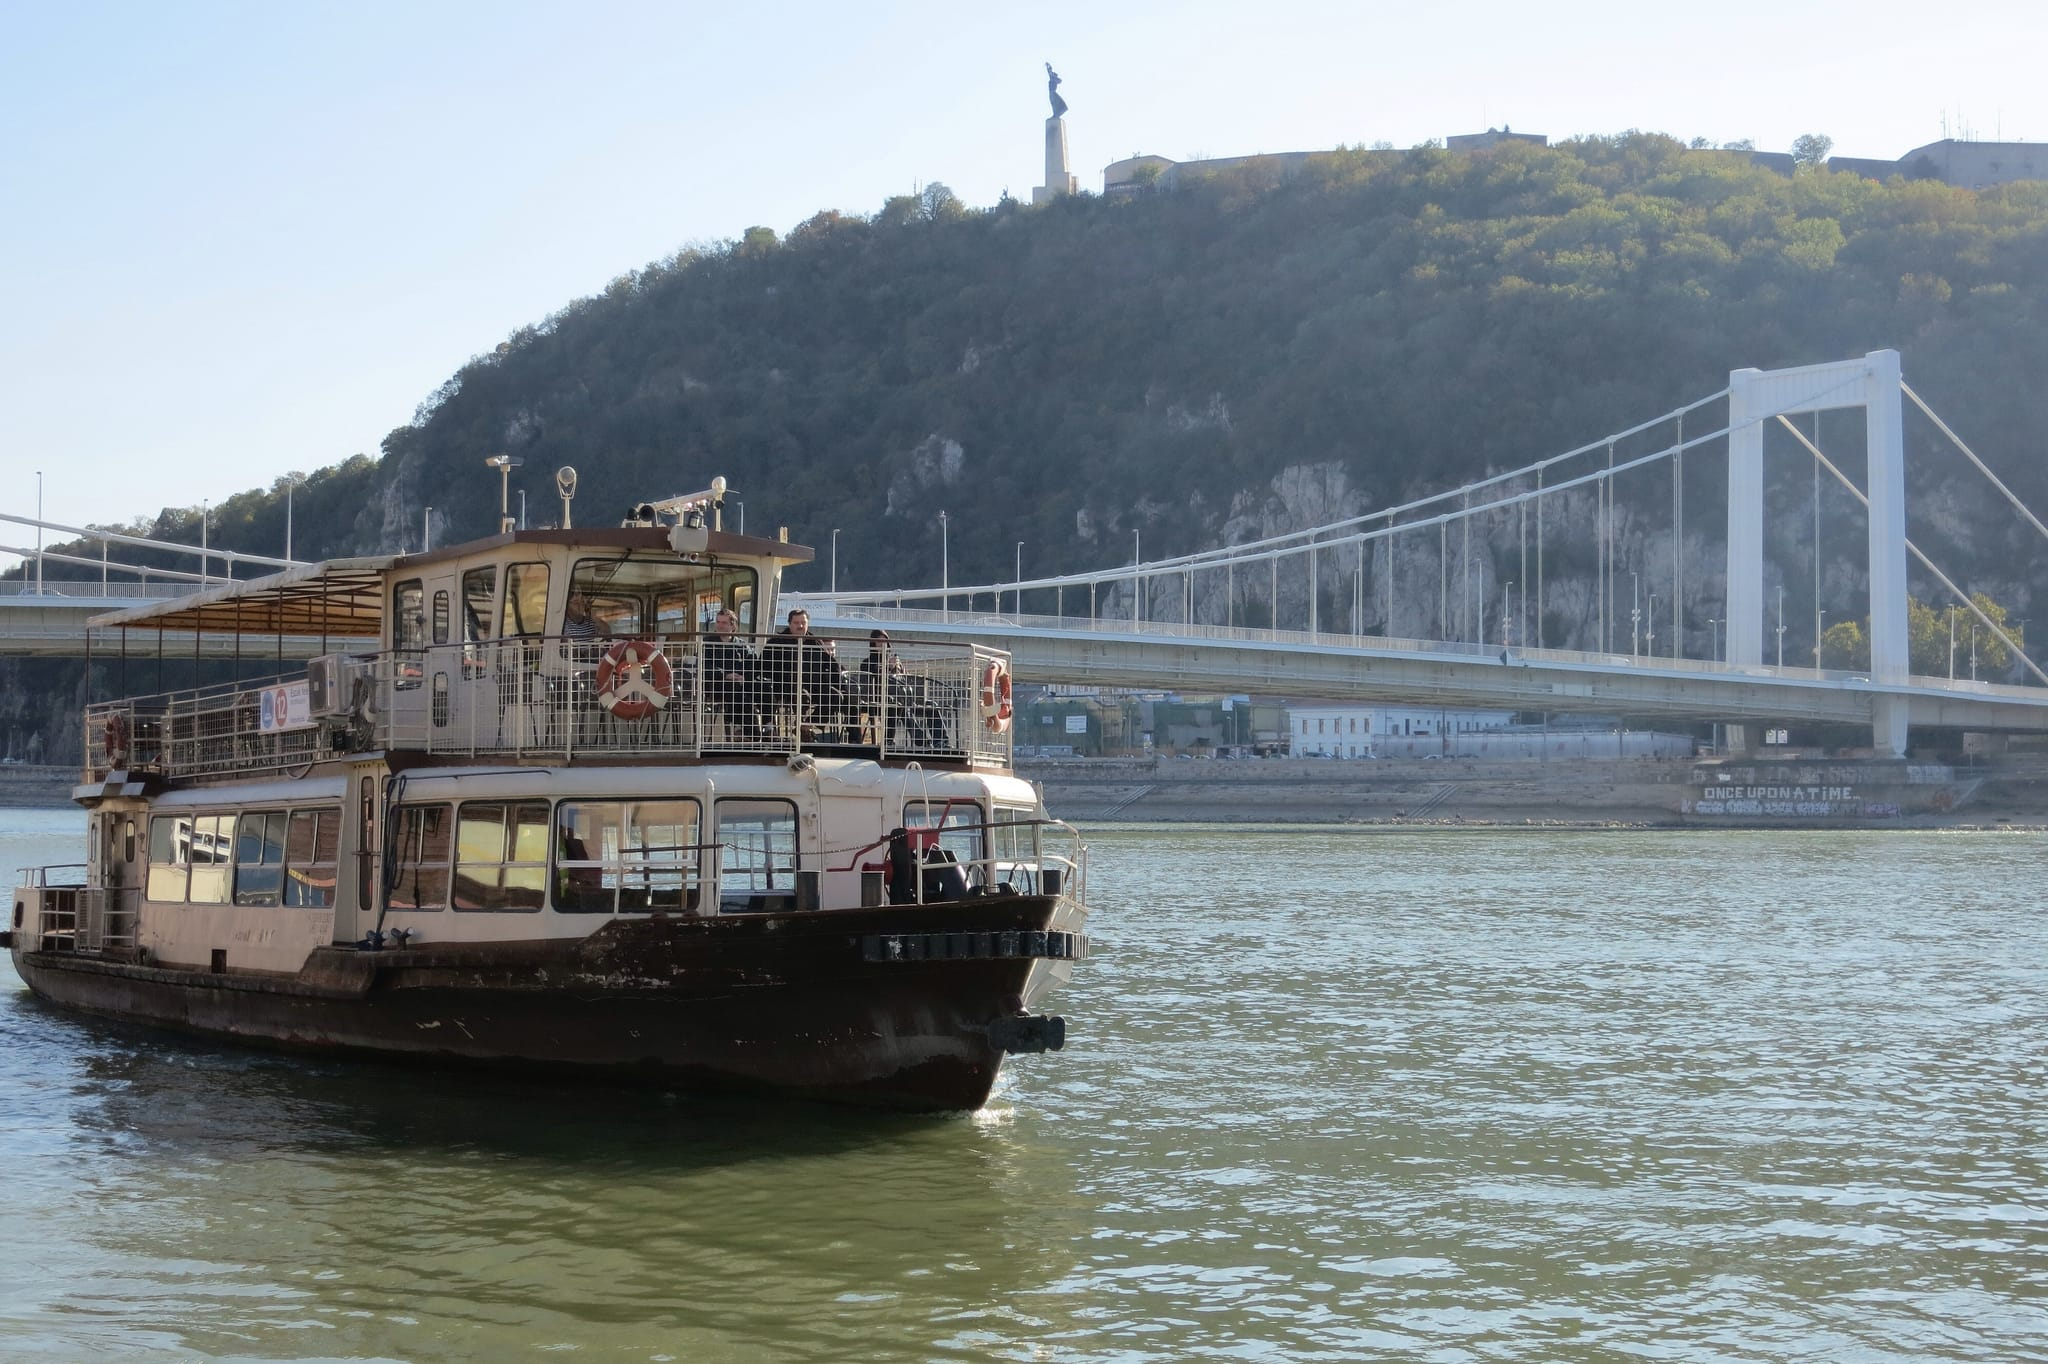 Ditch the Tourist Boats - Take the Local Ferry | Spotted by